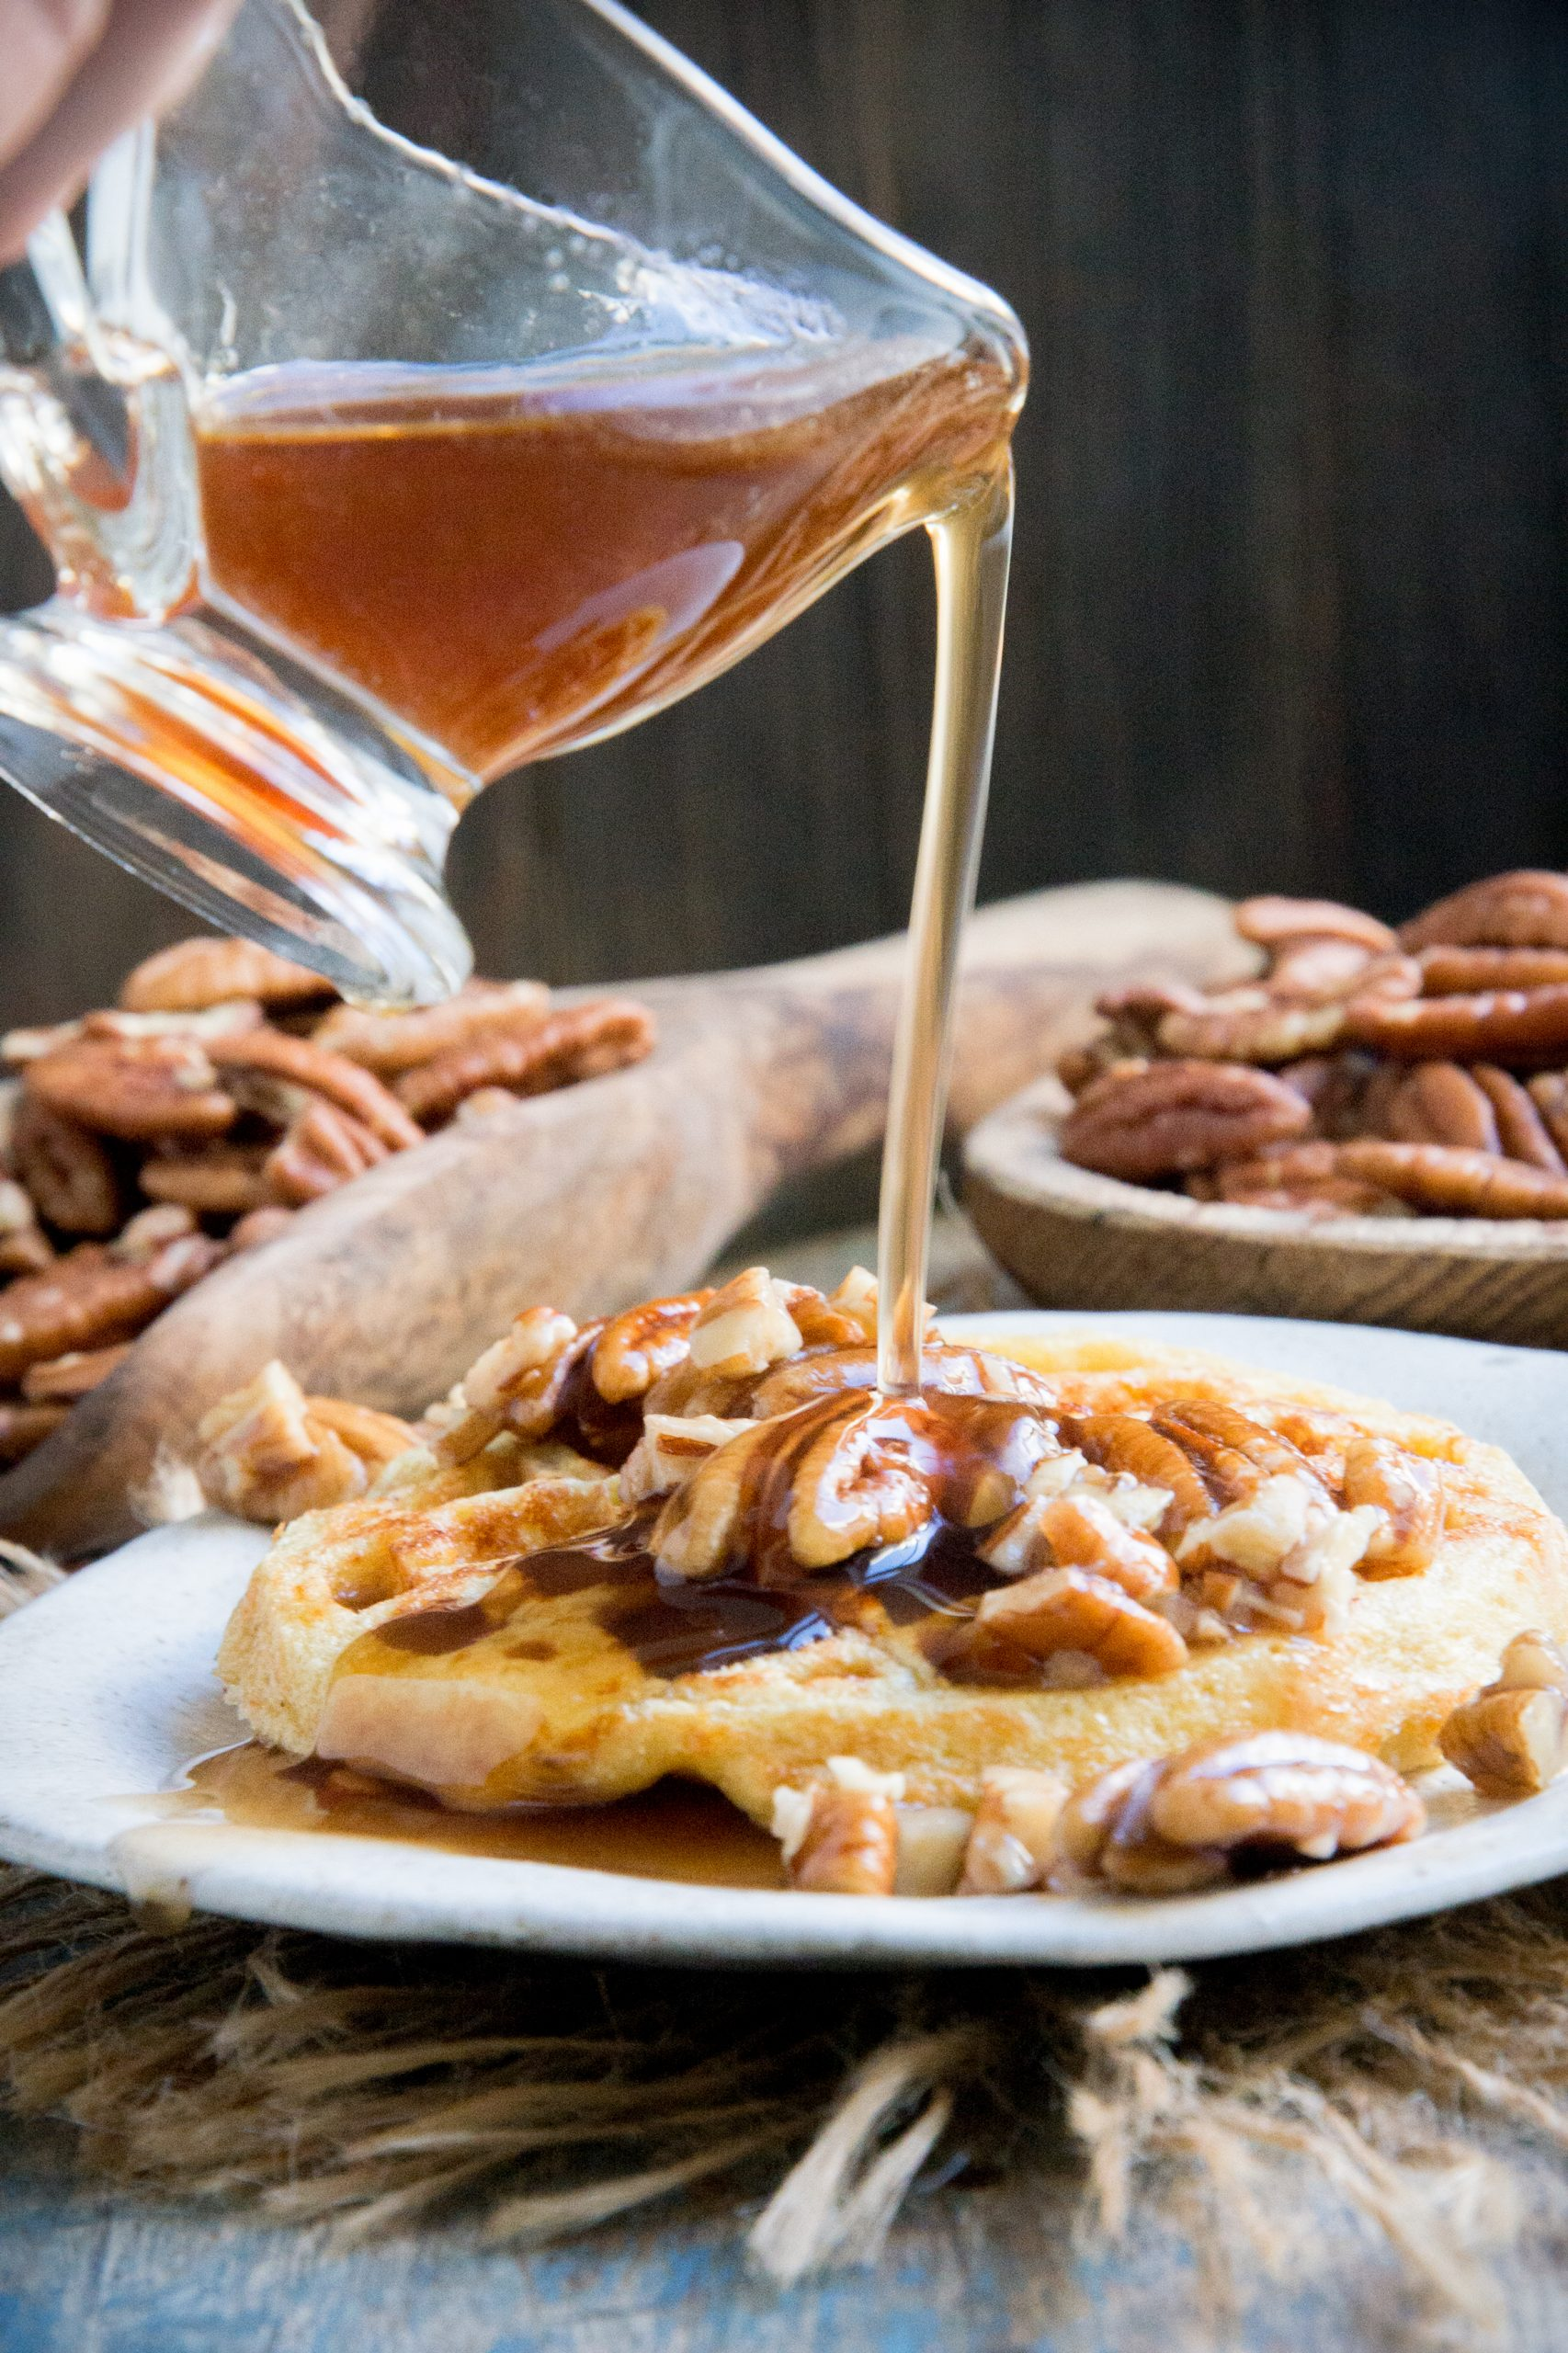 Pouring syrup on the keto maple pecan waffle.